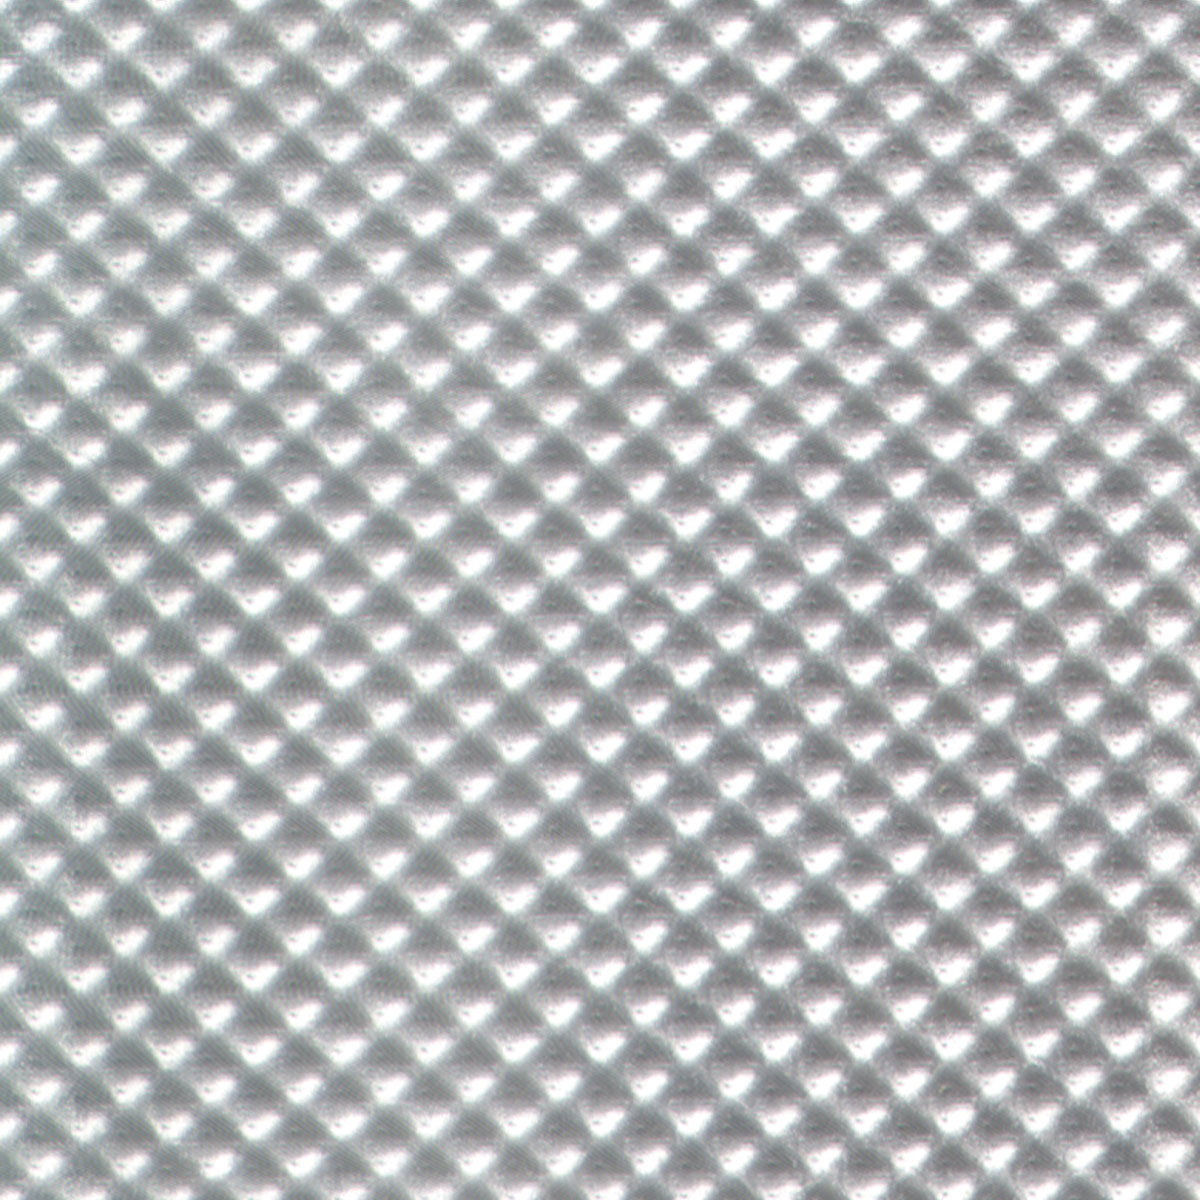 Superbe Plastruct Patterned Sheets, Checker Plate, 1:100 Scale